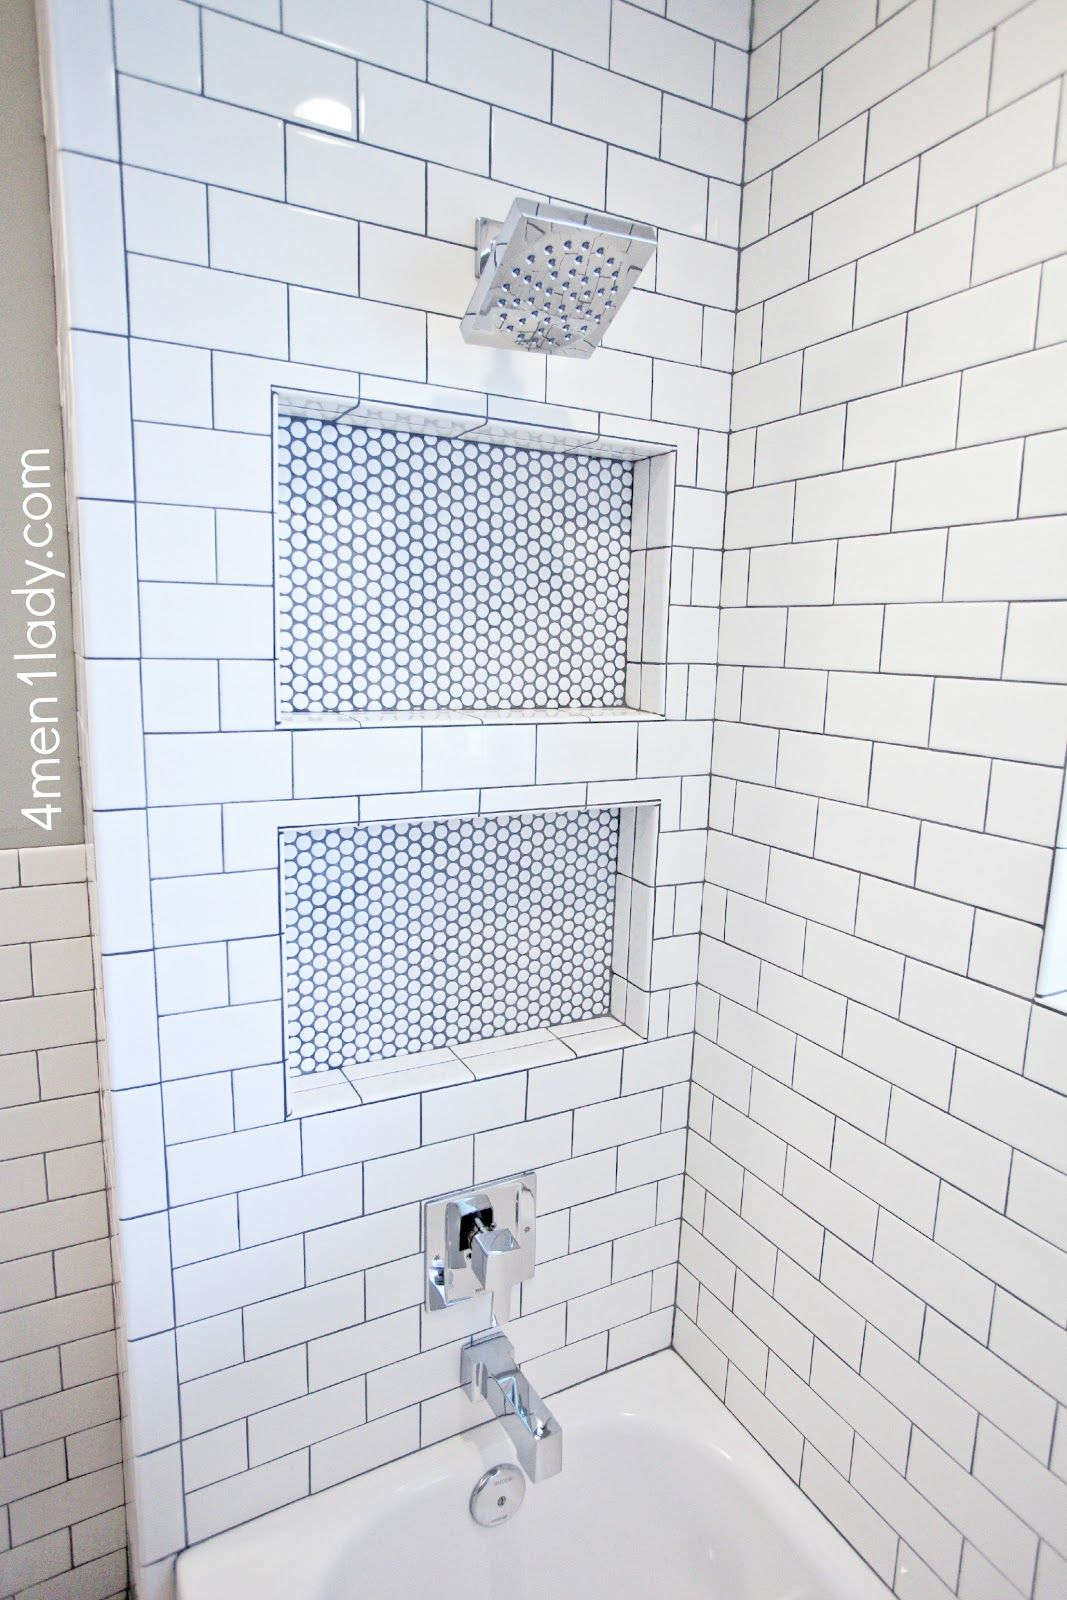 Main bath before and after\'s. - 4 Men 1 Lady | Finishes for our 1936 ...